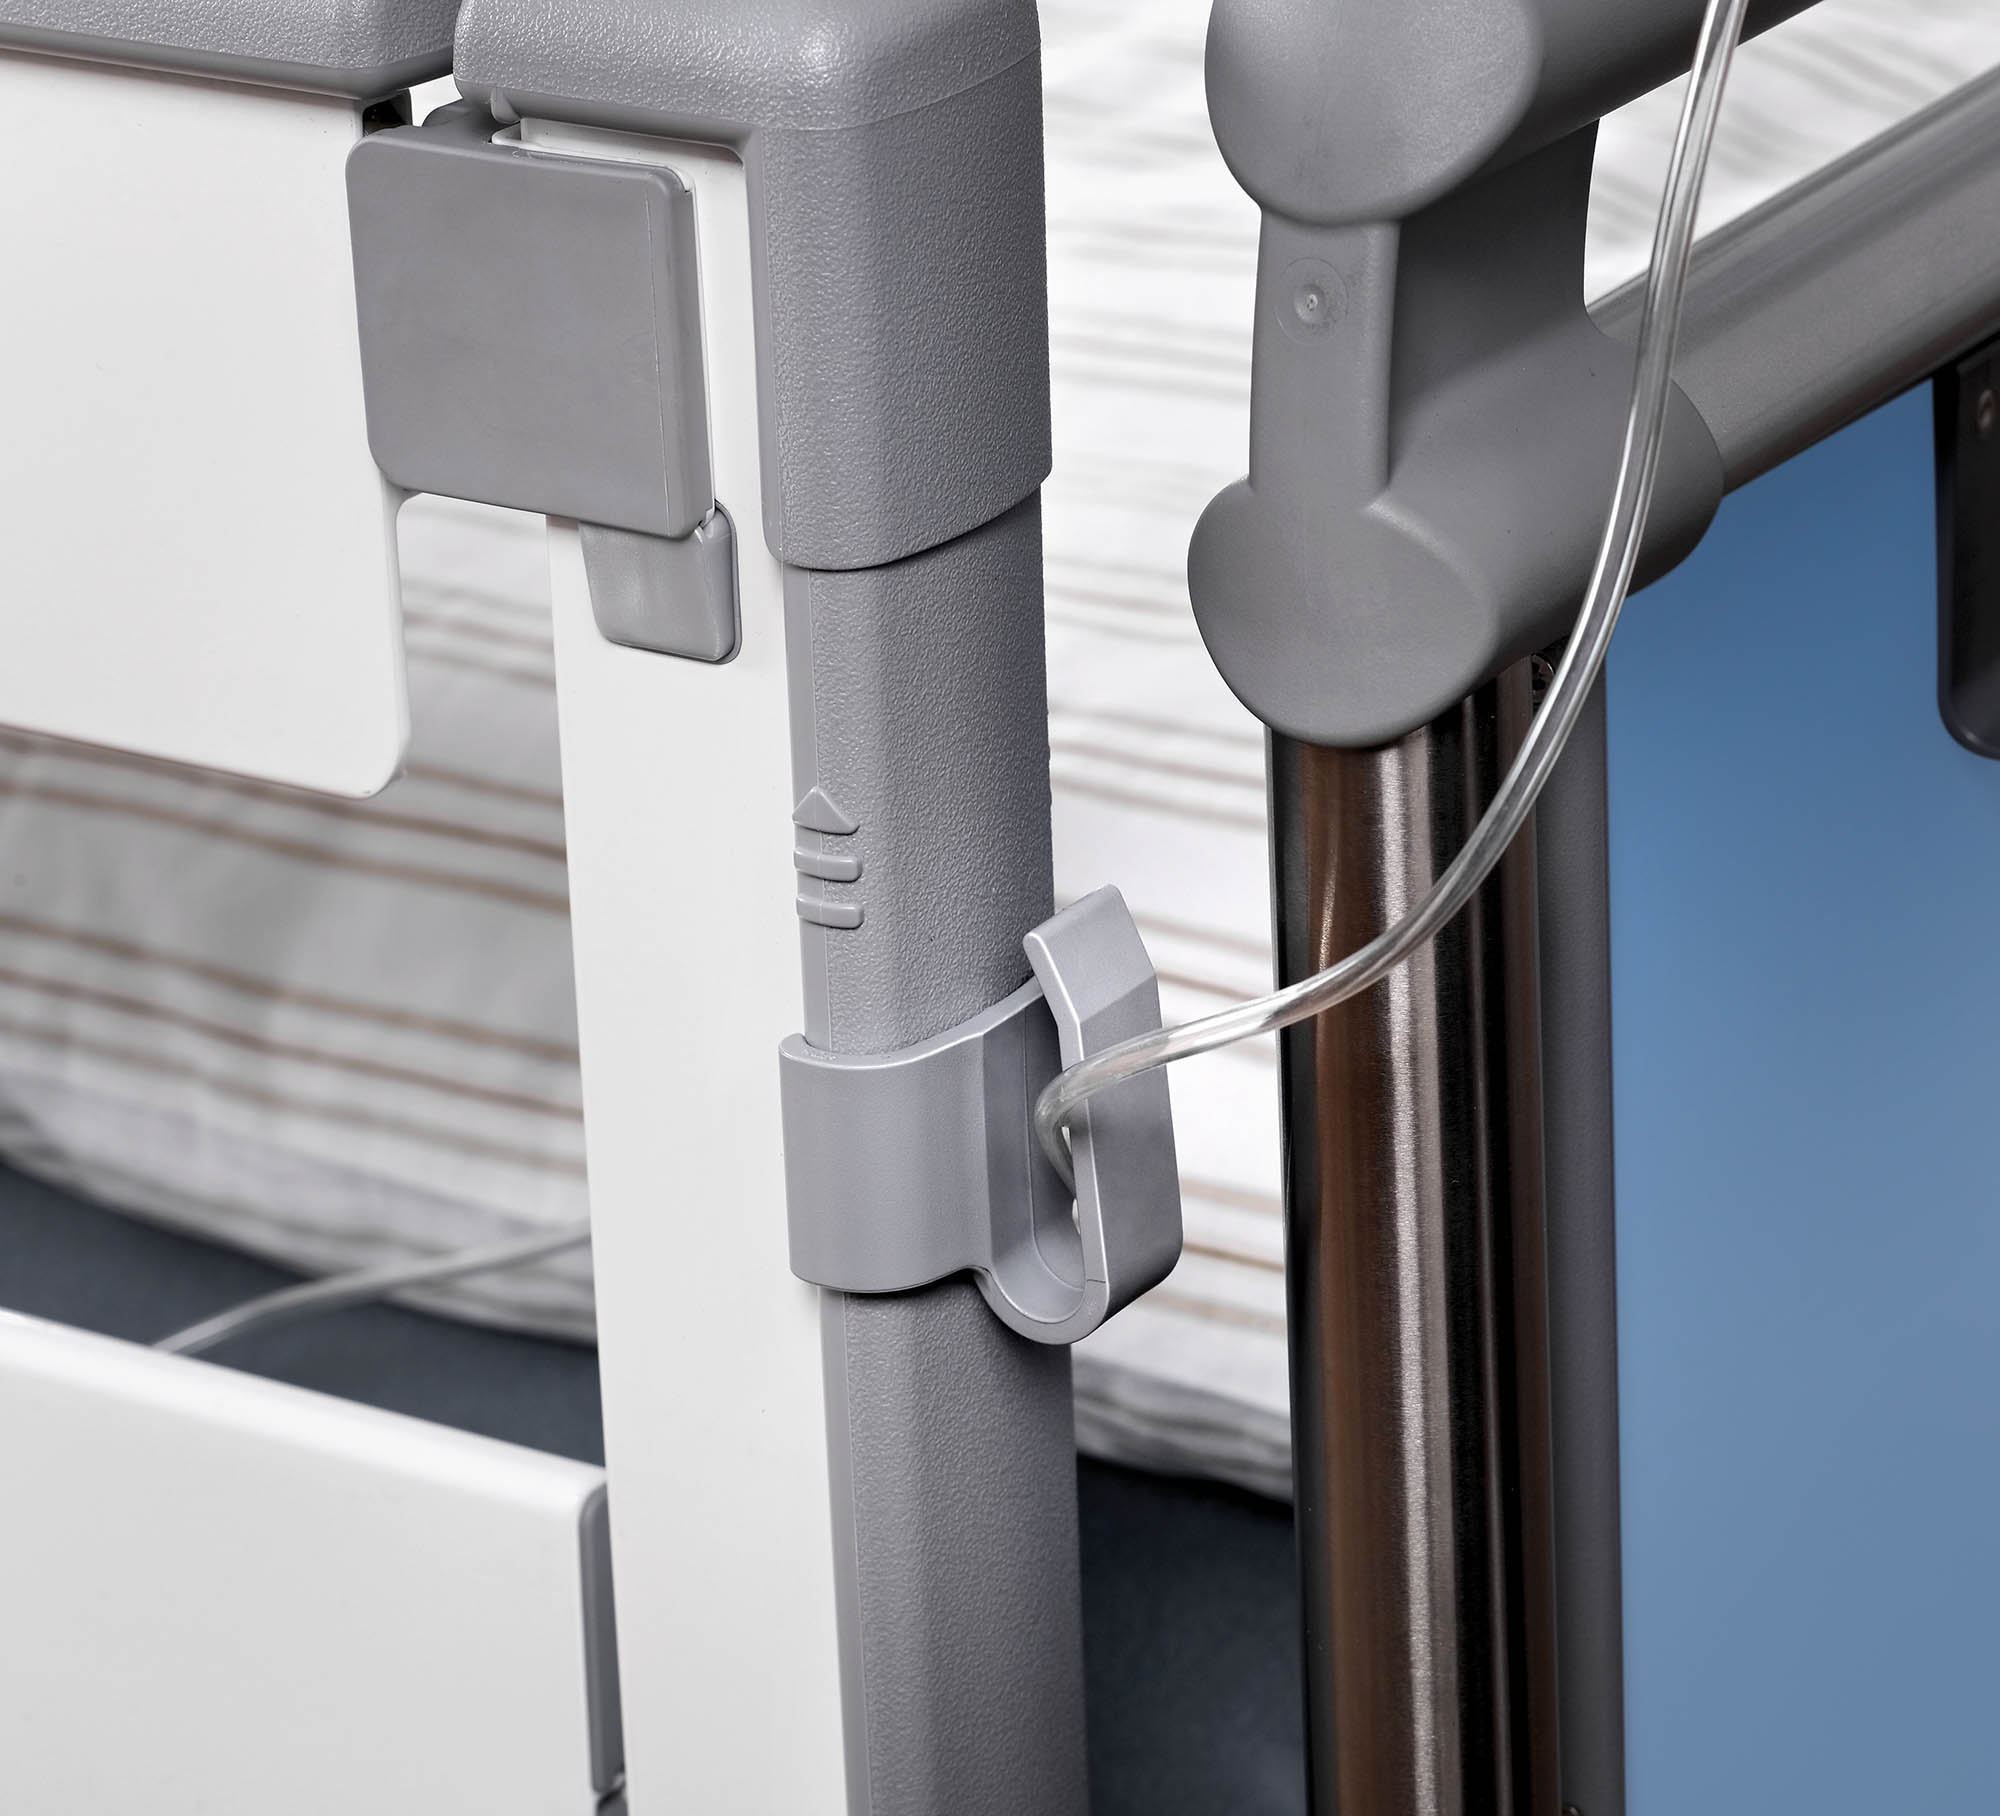 Drainage tube holder on the Sicuro pesa intensive care bed